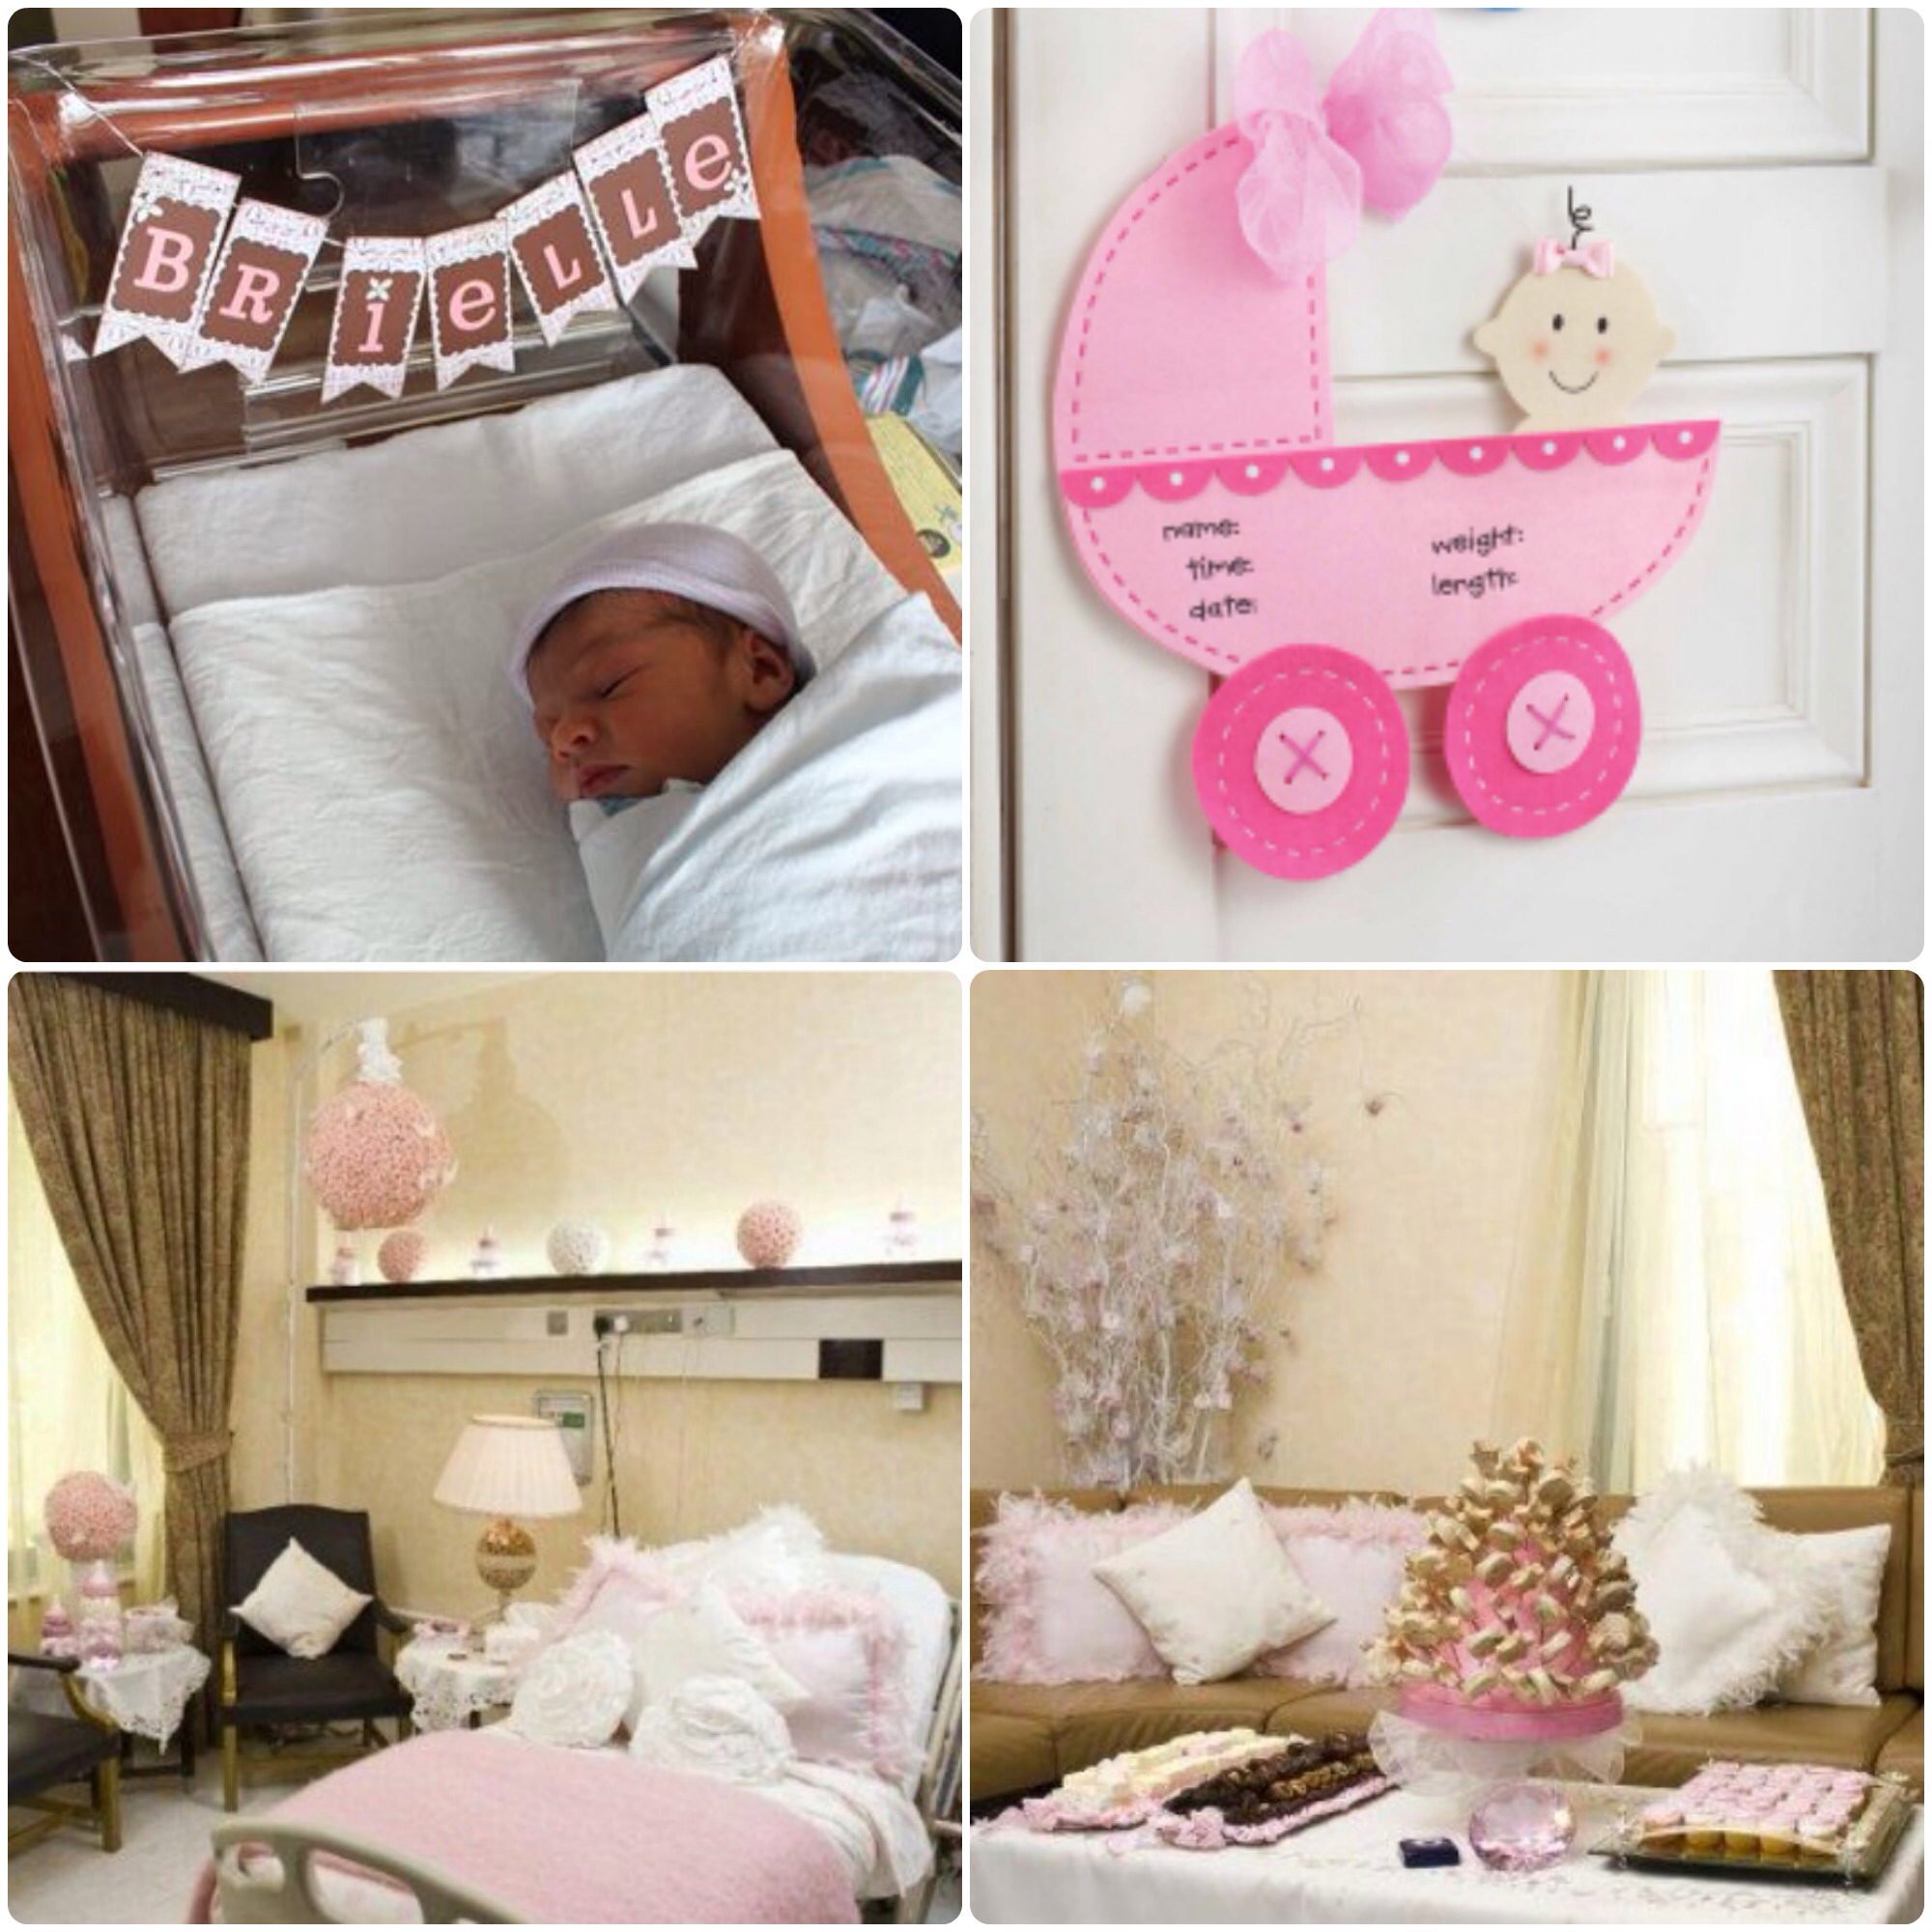 Beautiful Baby Room Decoration Darbylanefurniture Com Home Decorators Catalog Best Ideas of Home Decor and Design [homedecoratorscatalog.us]